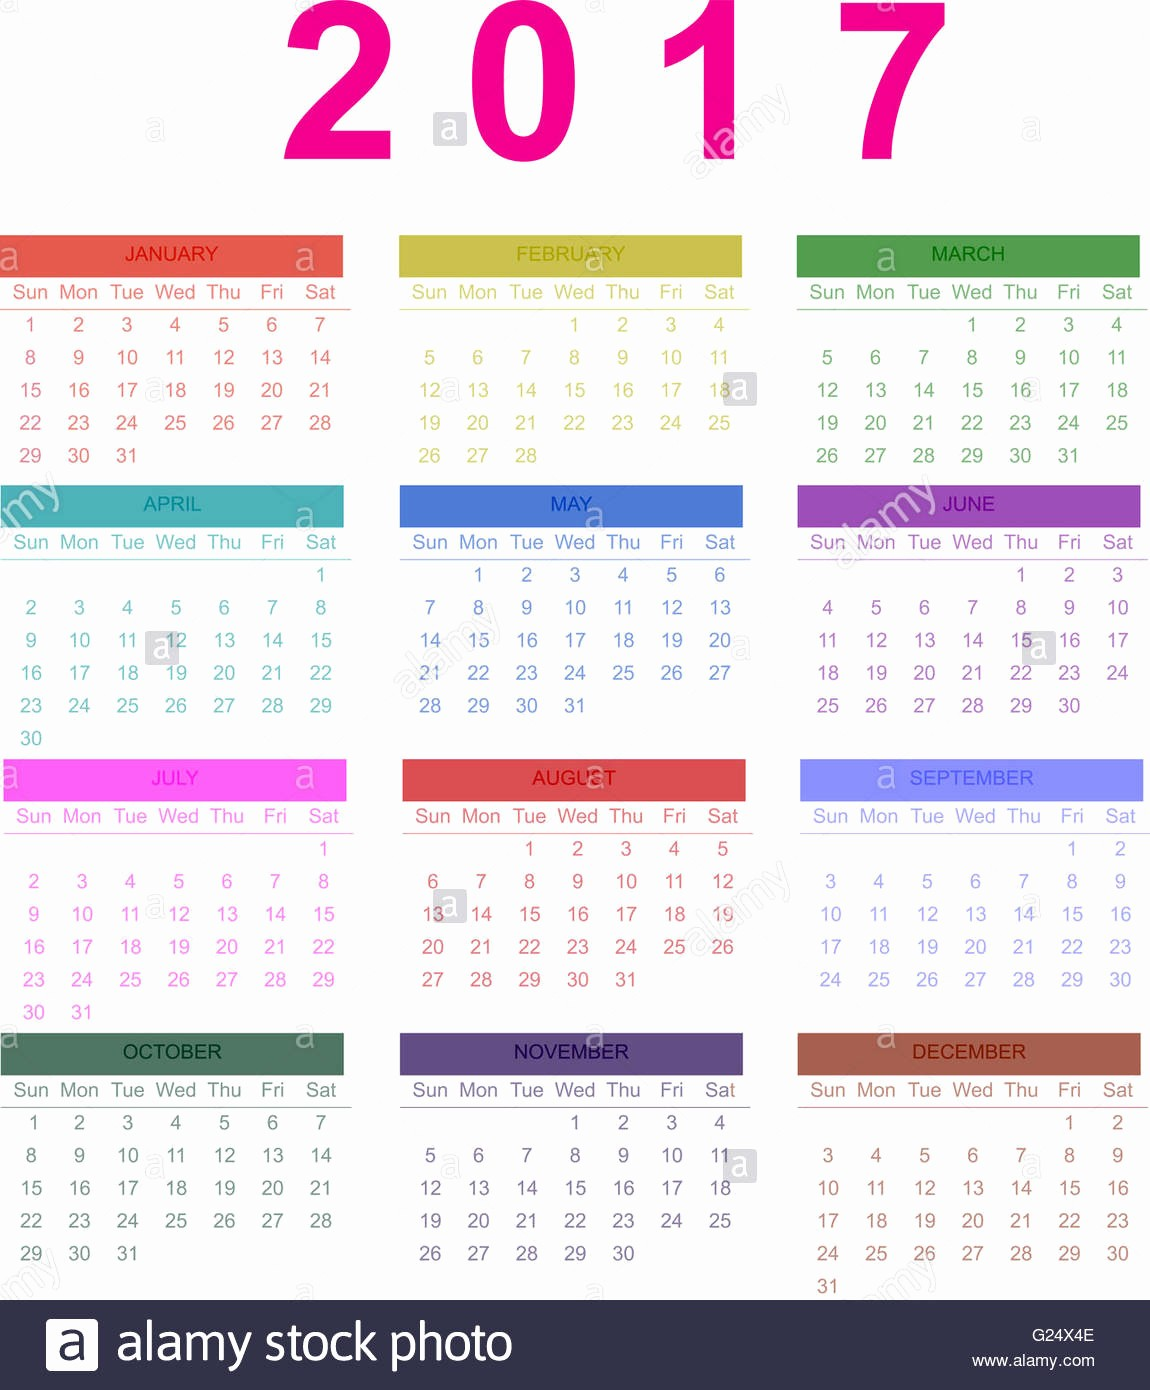 2017 Calendar Month by Month Elegant Calendar 2017 Monthly Calendar Of 2017 Stock